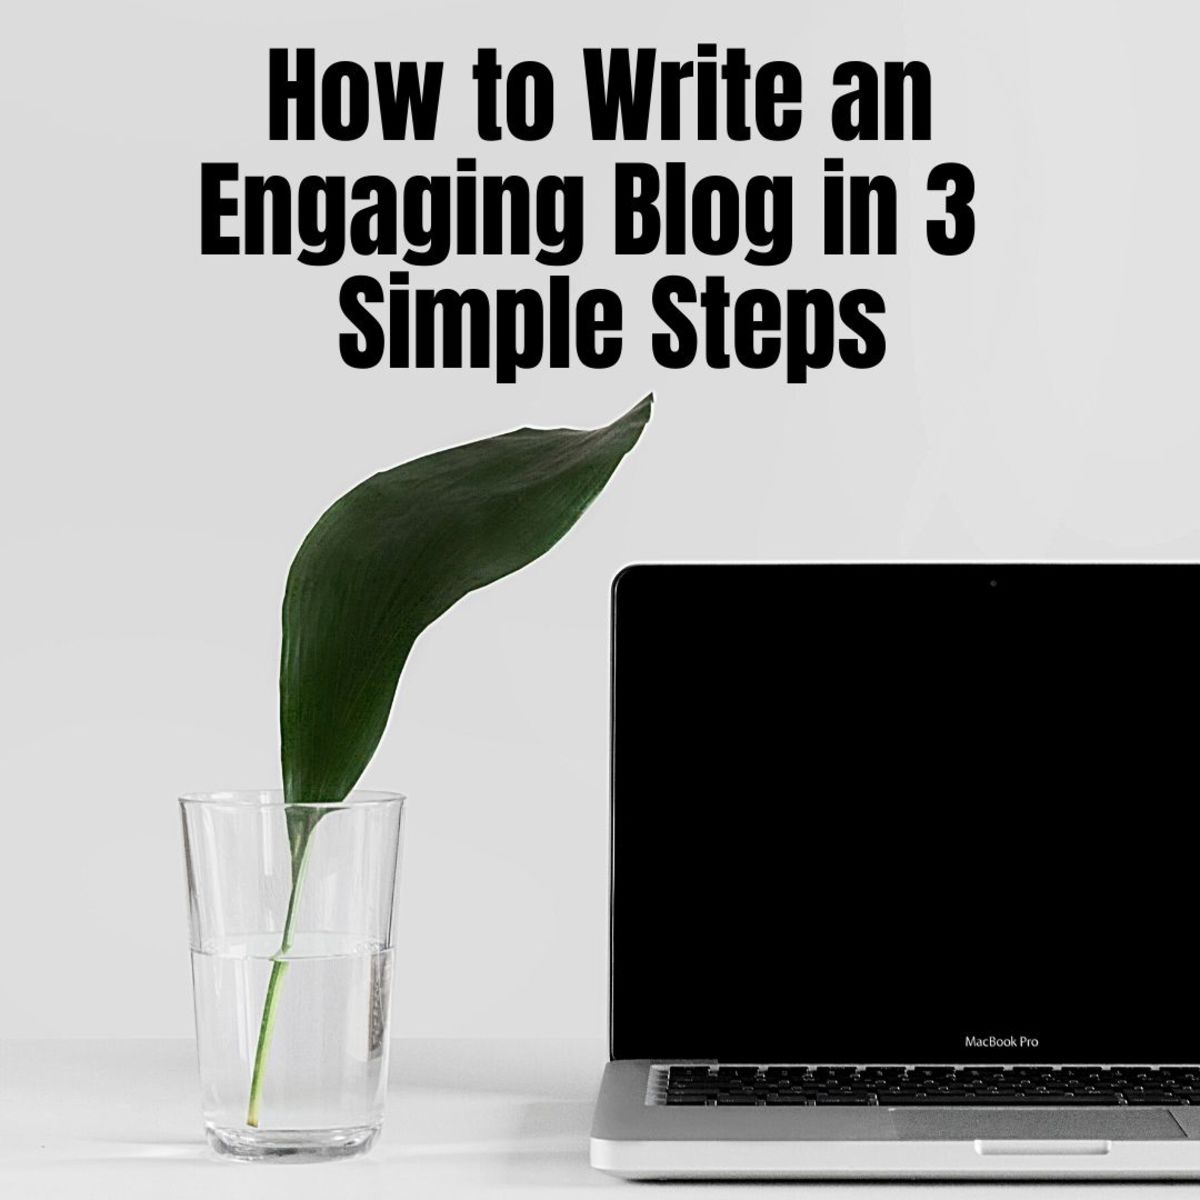 Learn how these three simple steps will help you craft an engaging, search-friendly blog.